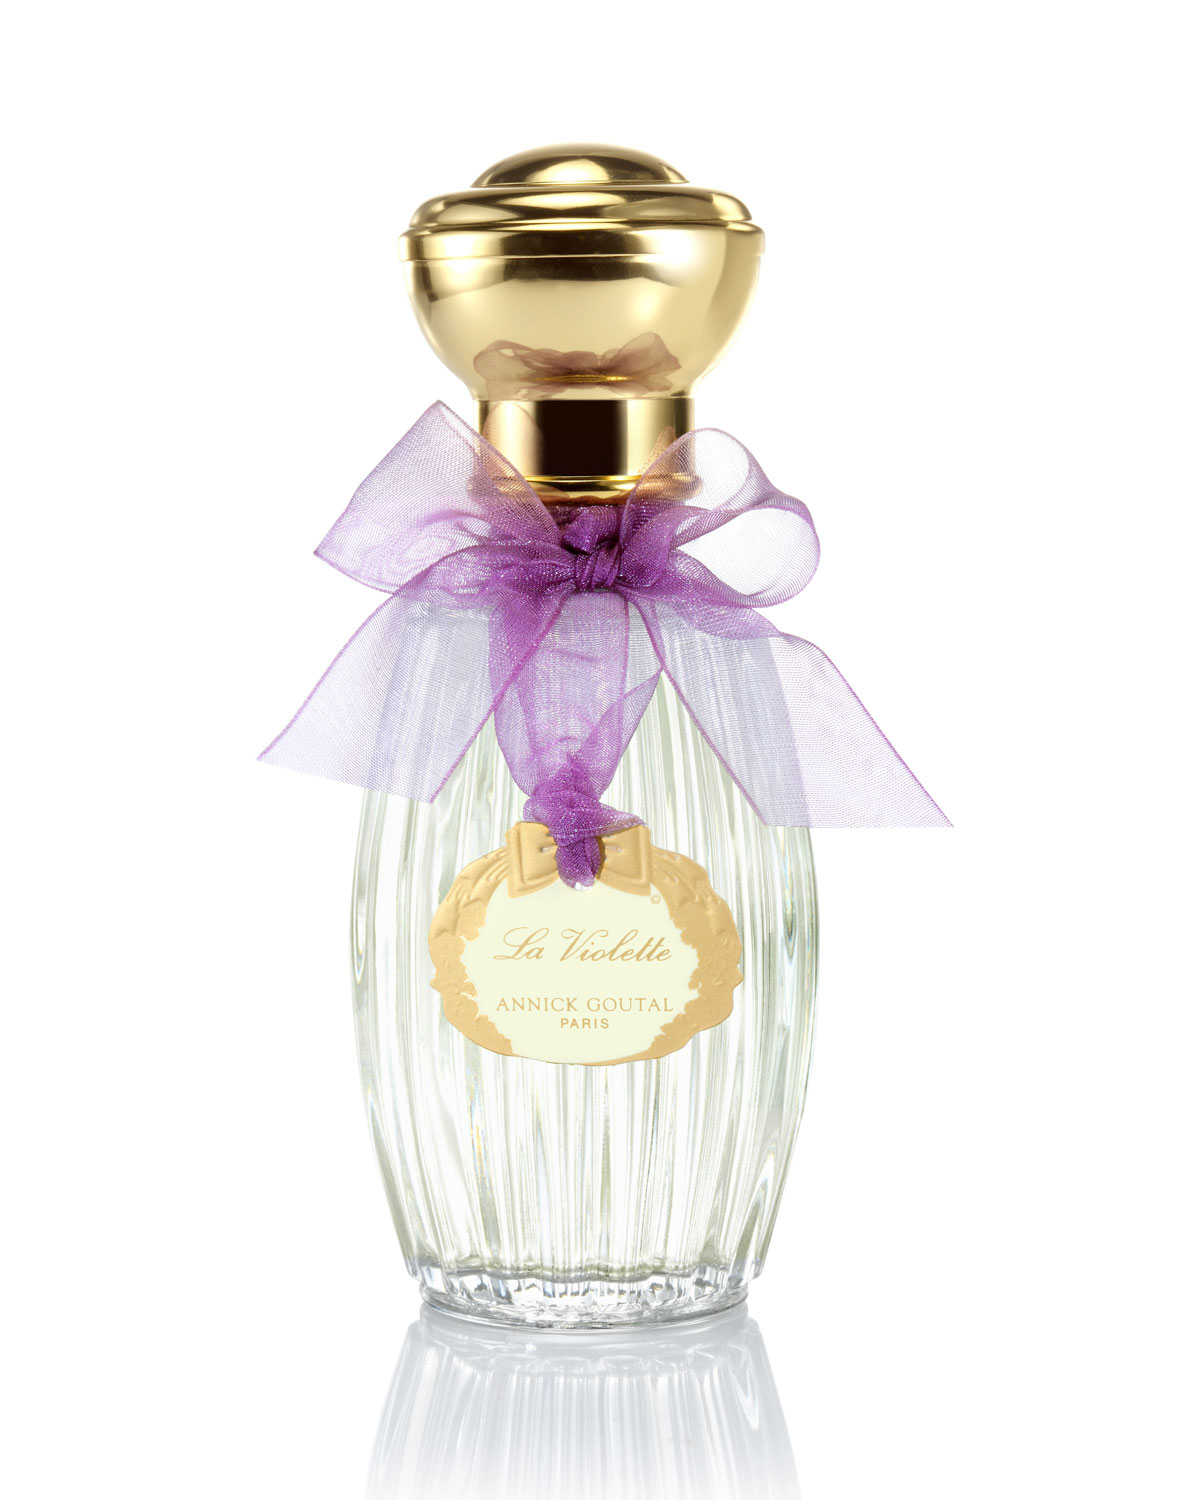 Annick-Goutal-Le-Violette-Solifore-Limited-Edition